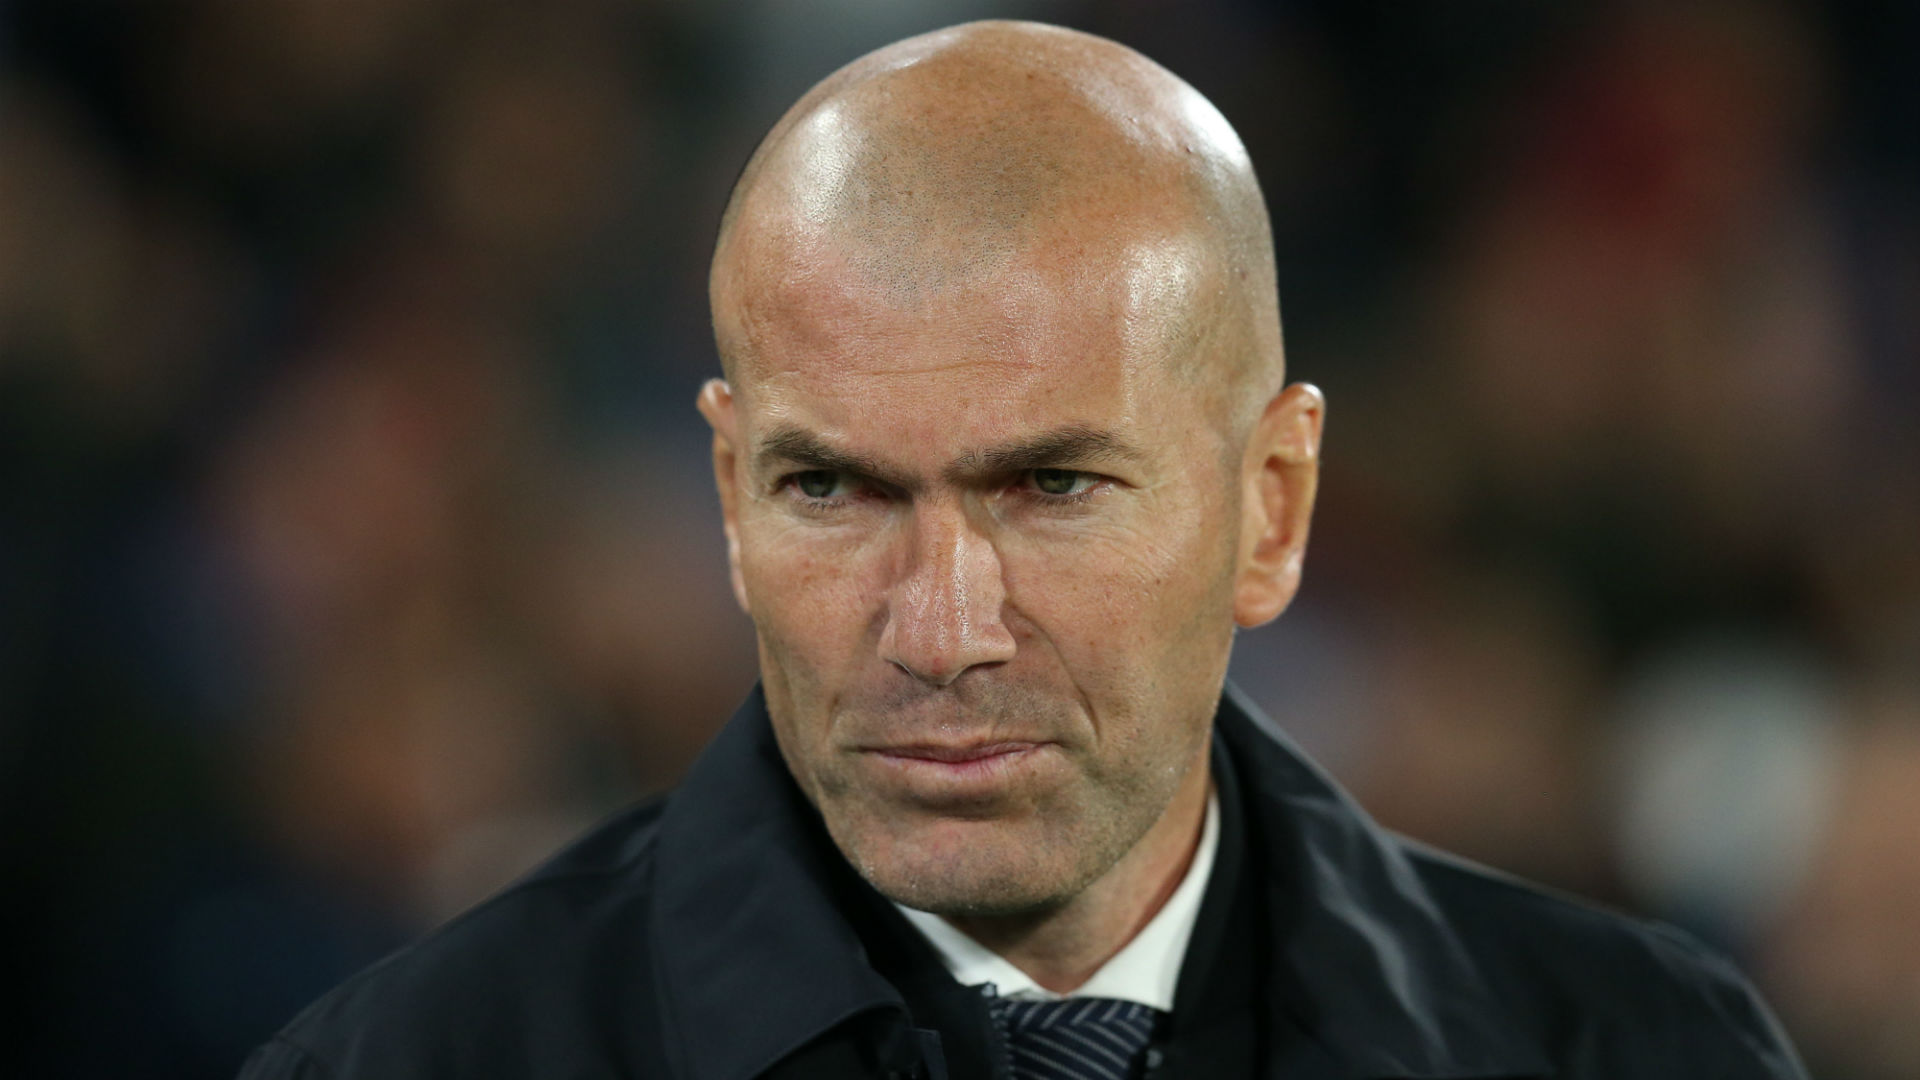 Real Madrid confirm death of Zidane's brother